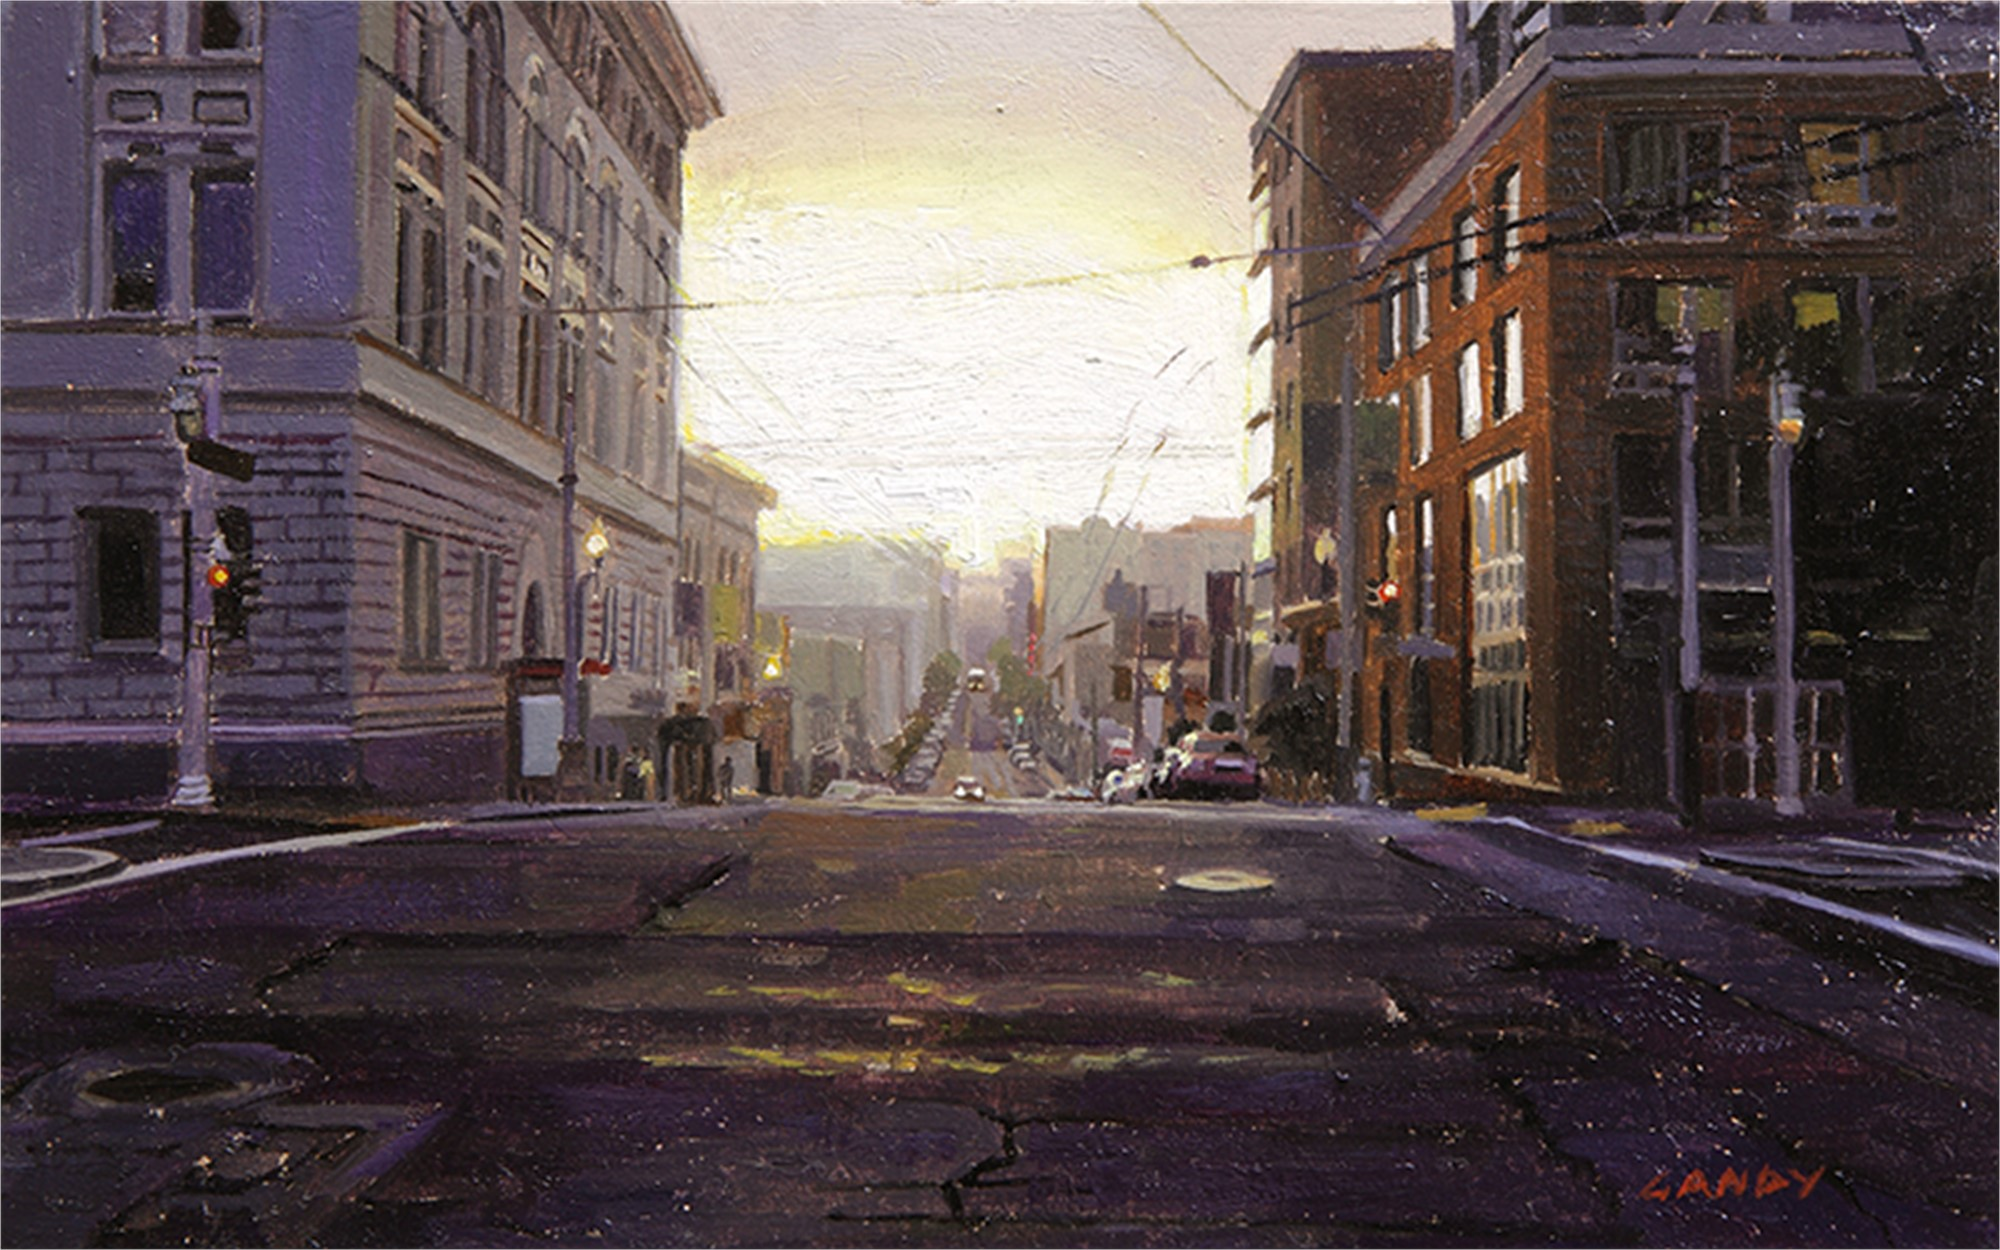 Sunrise on Ost and Van Ness by Greg Gandy